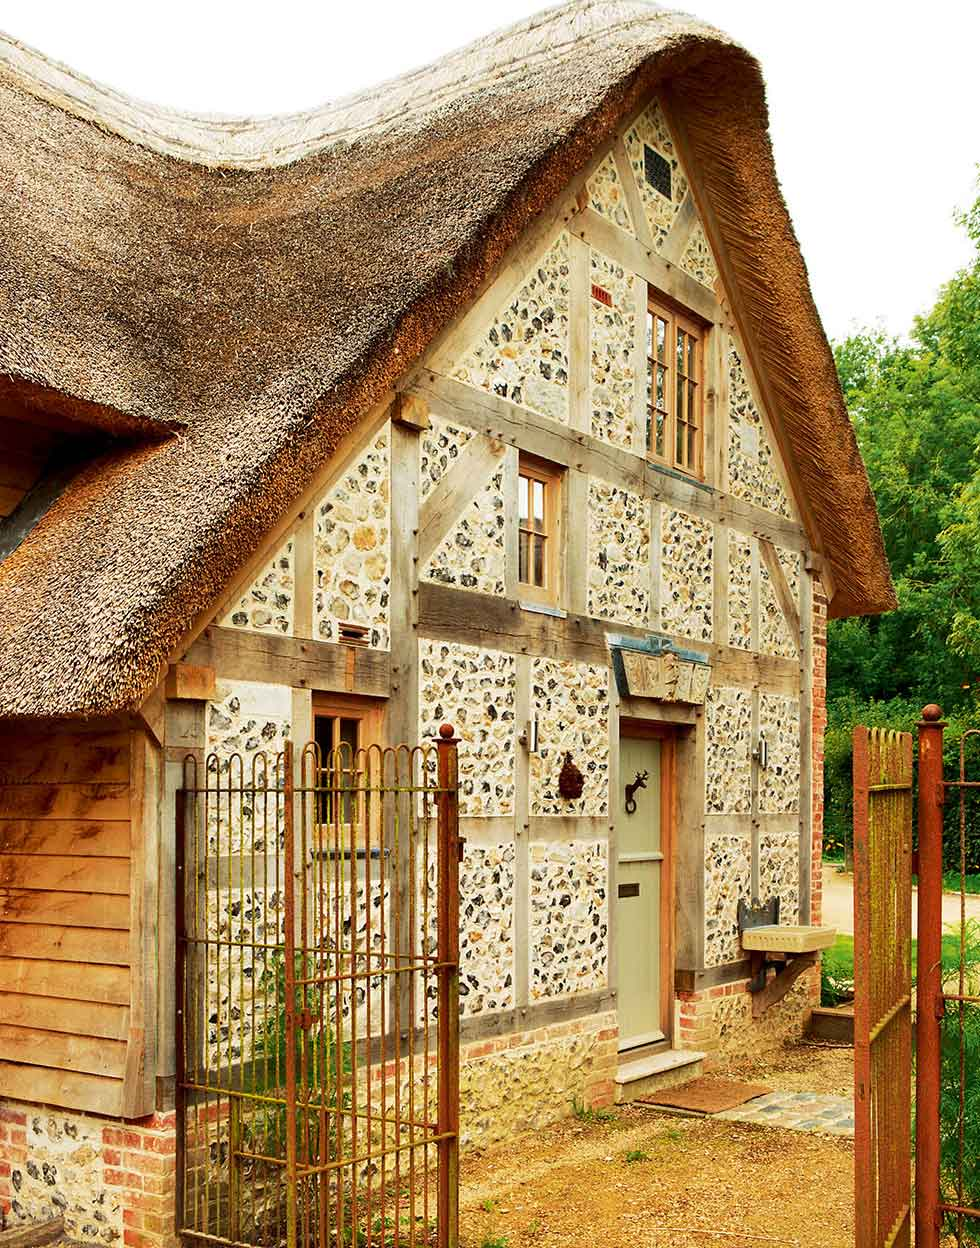 Restired listed cottage with flint exterior